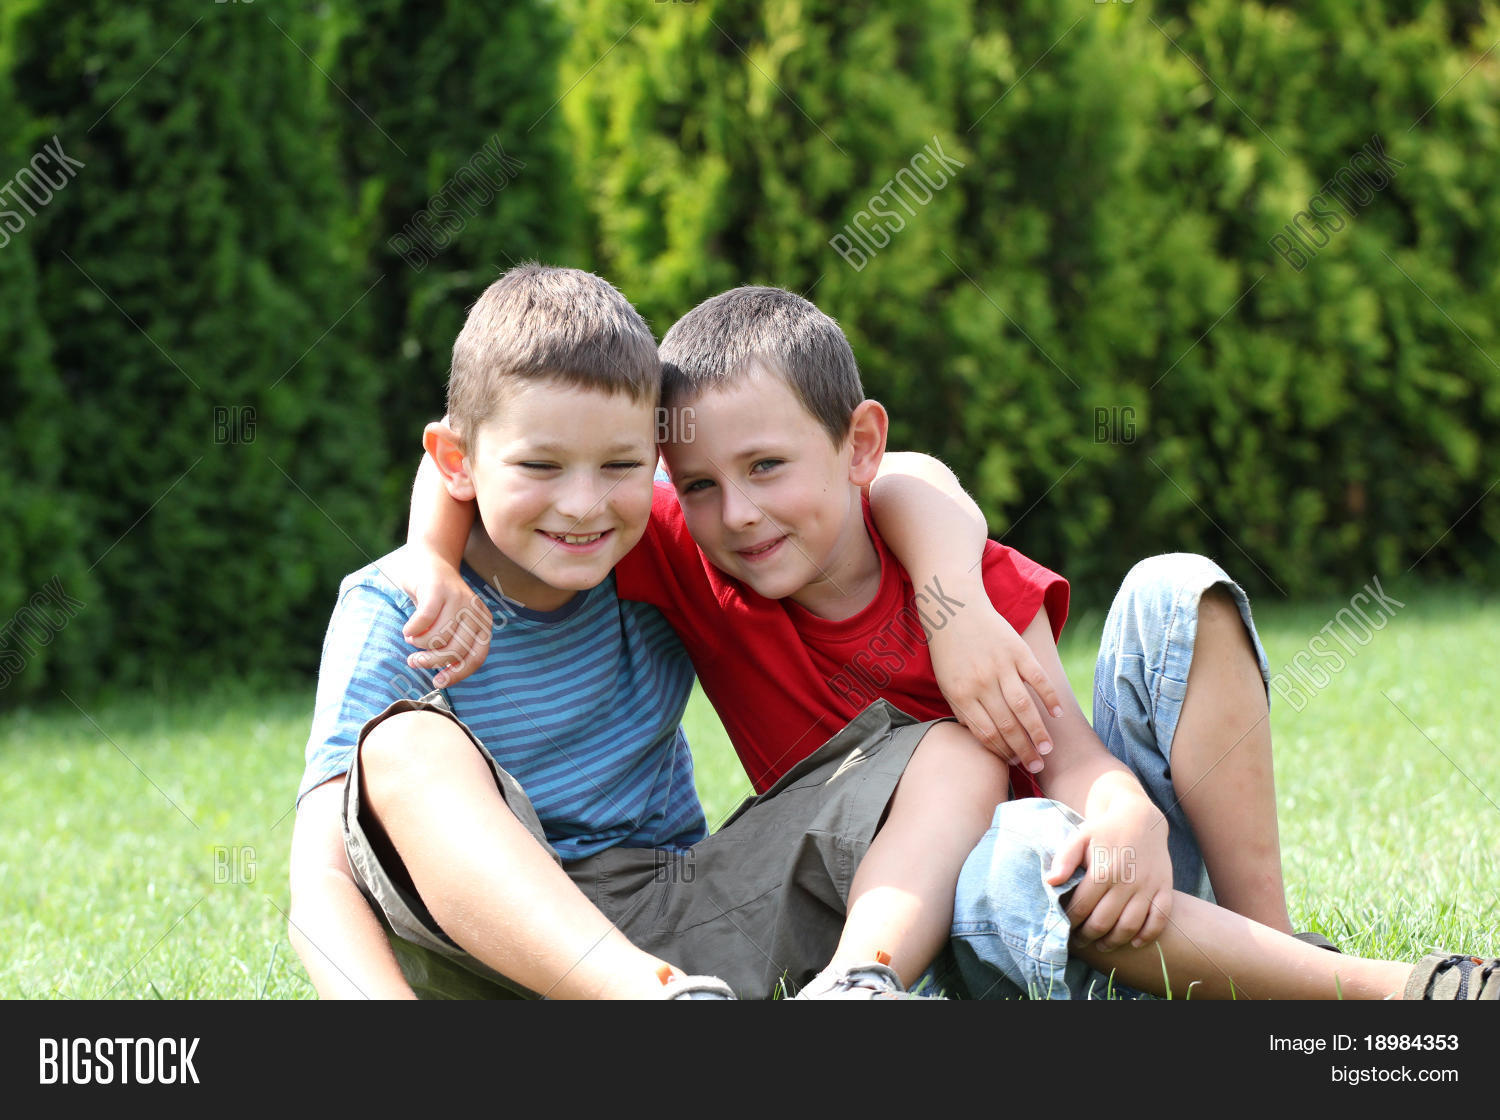 Portrait Two Boys, Image & Photo (Free Trial) | Bigstock